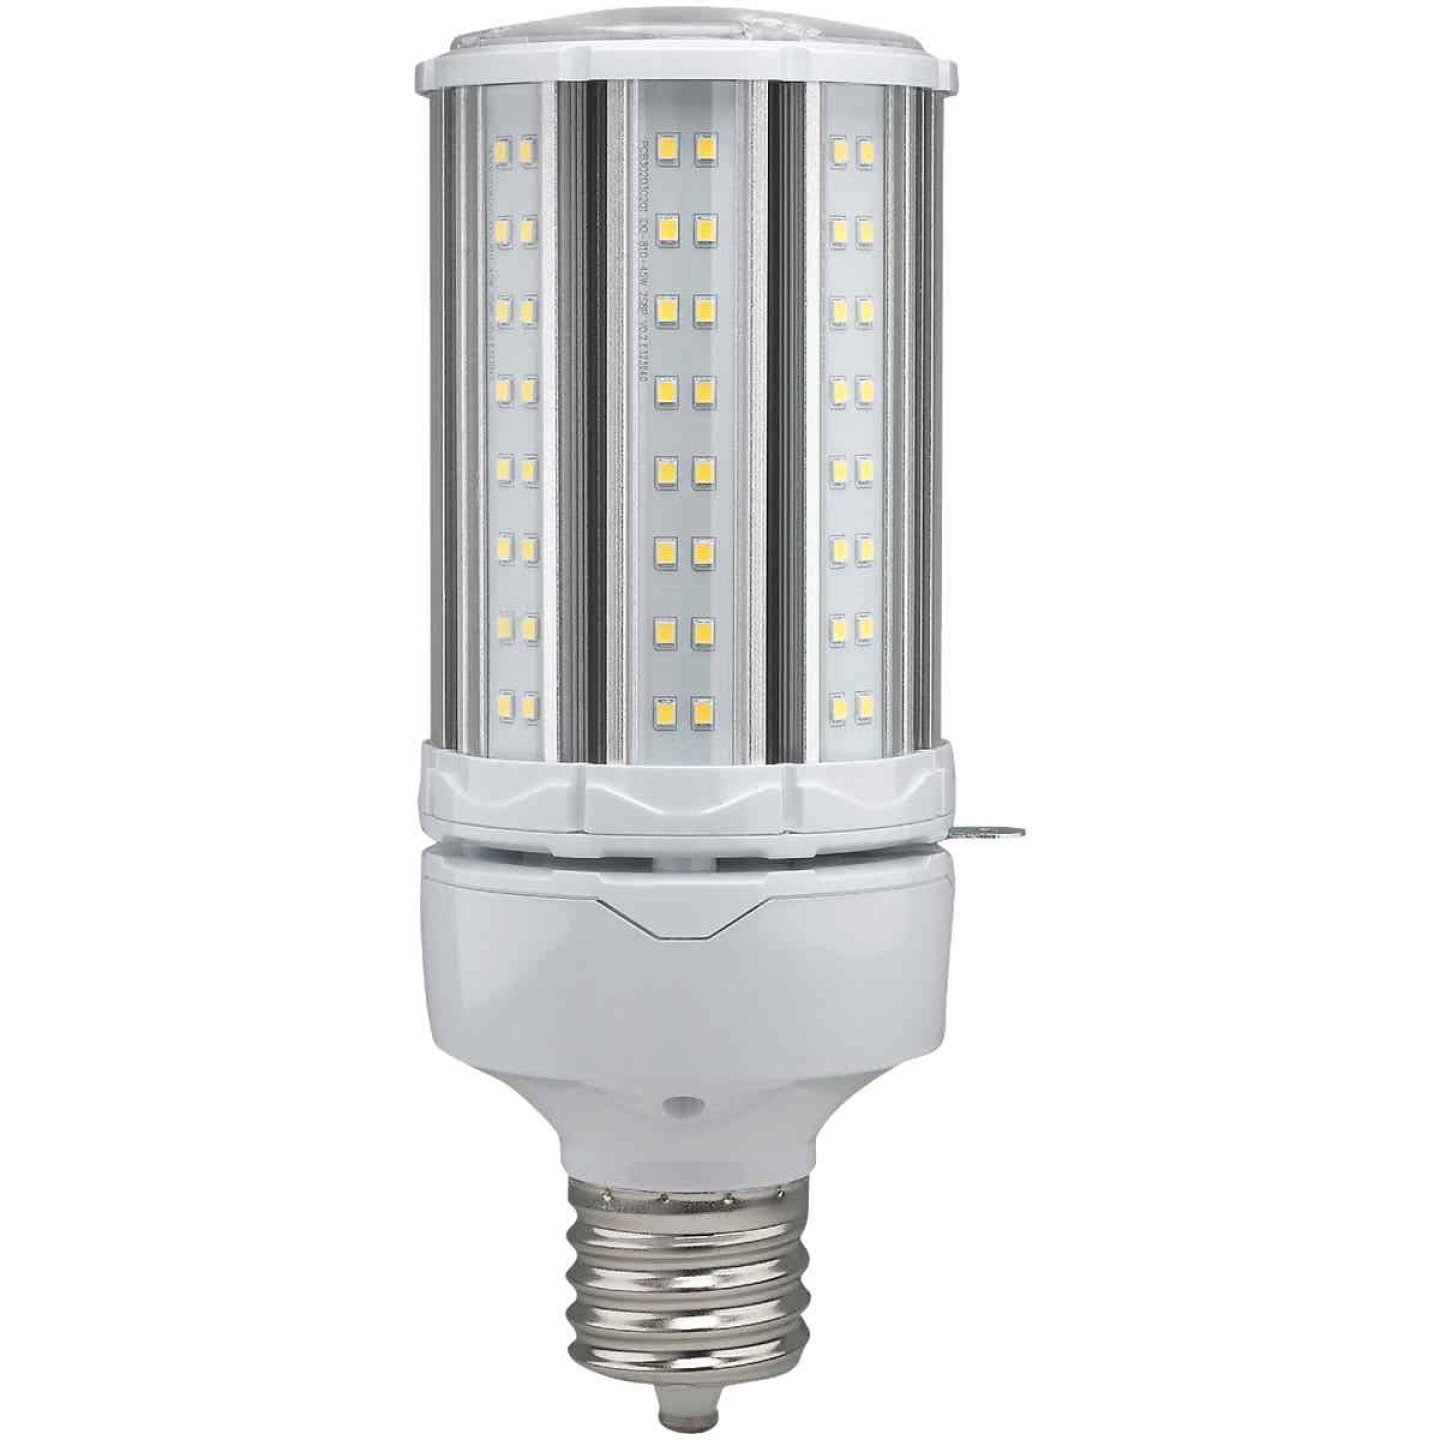 Satco Hi-Pro 45W Clear Corn Cob Mogul Extended Base LED High-Intensity Light Bulb Image 1